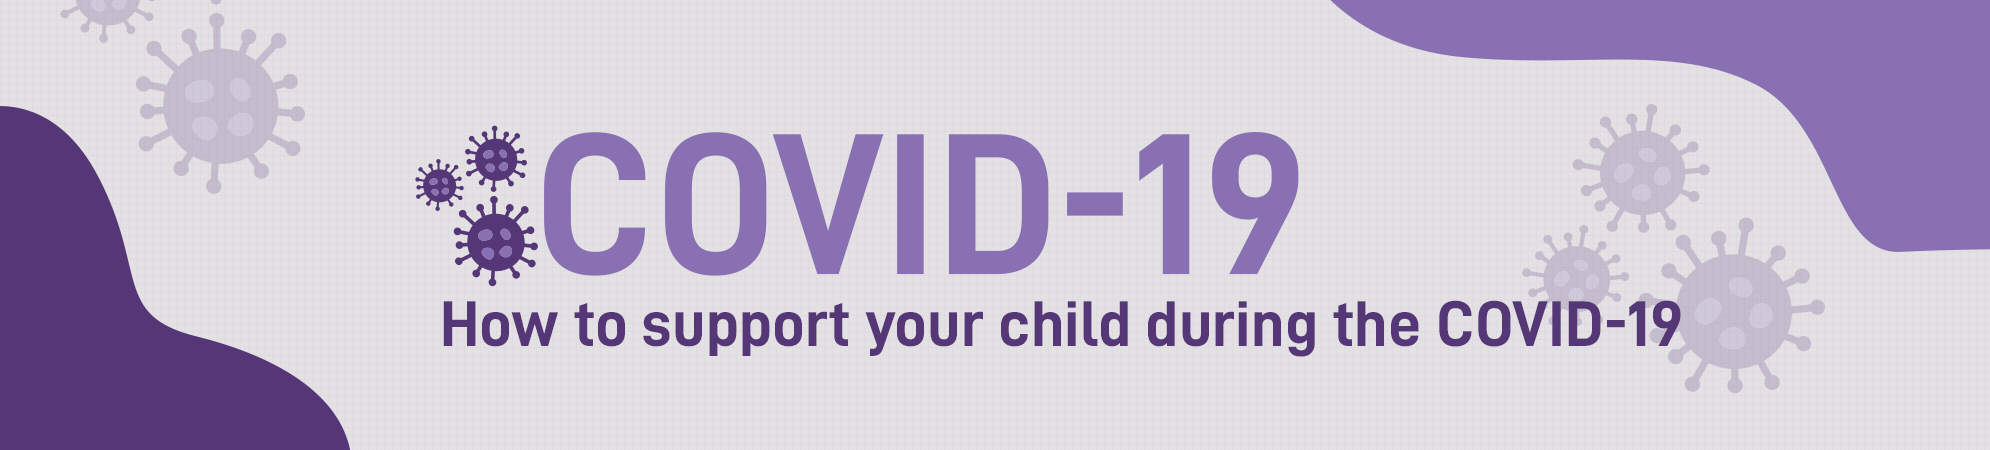 Covid-19, how to support your kids during the COVID 19